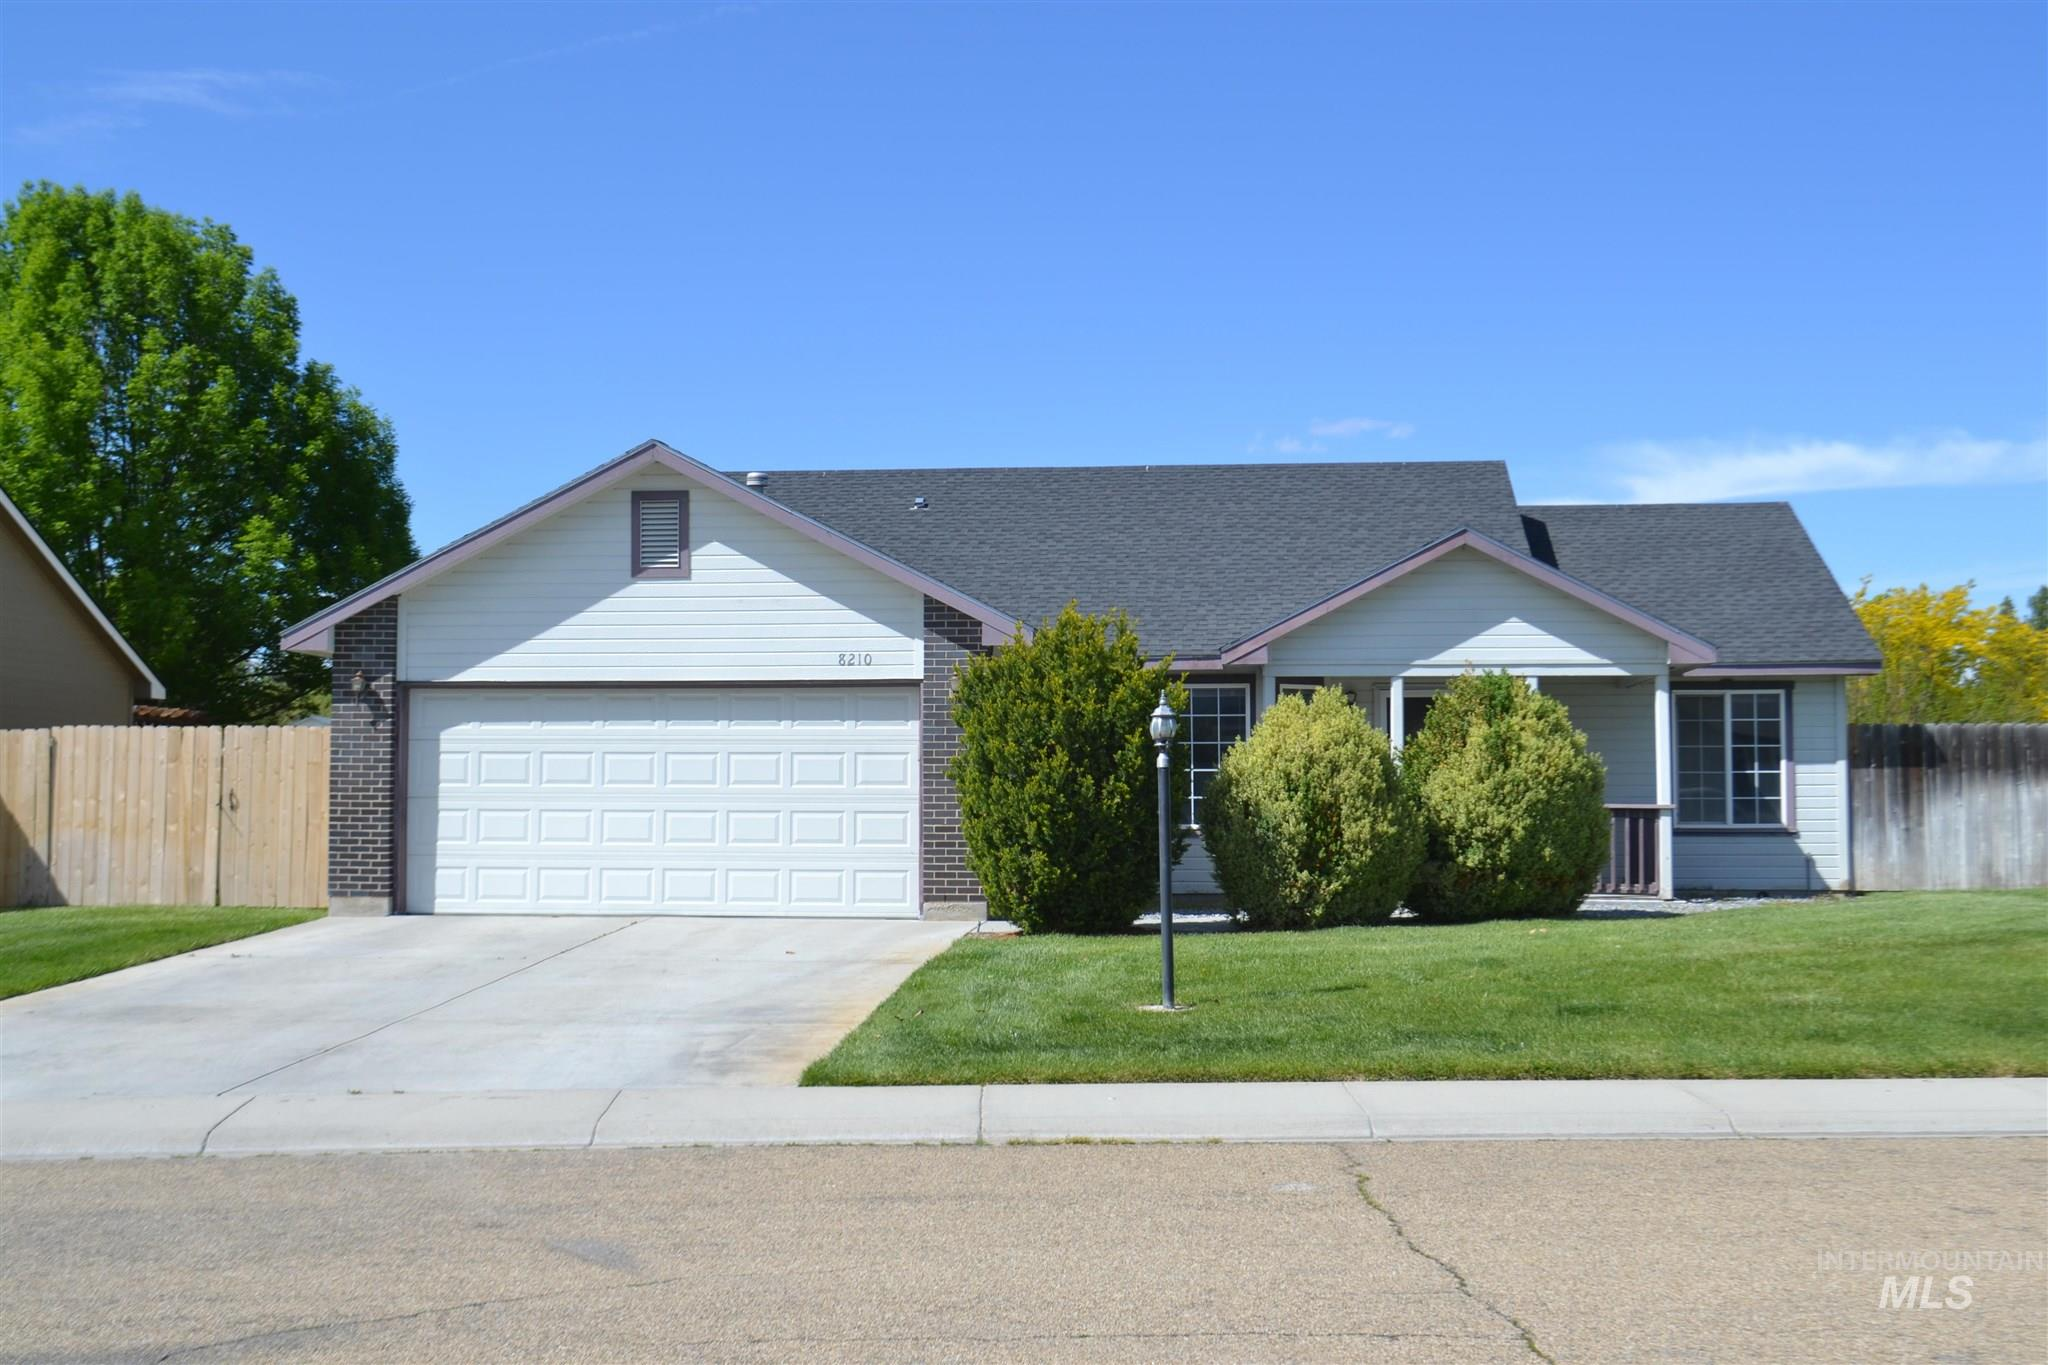 8210 Waterside Property Photo - Nampa, ID real estate listing